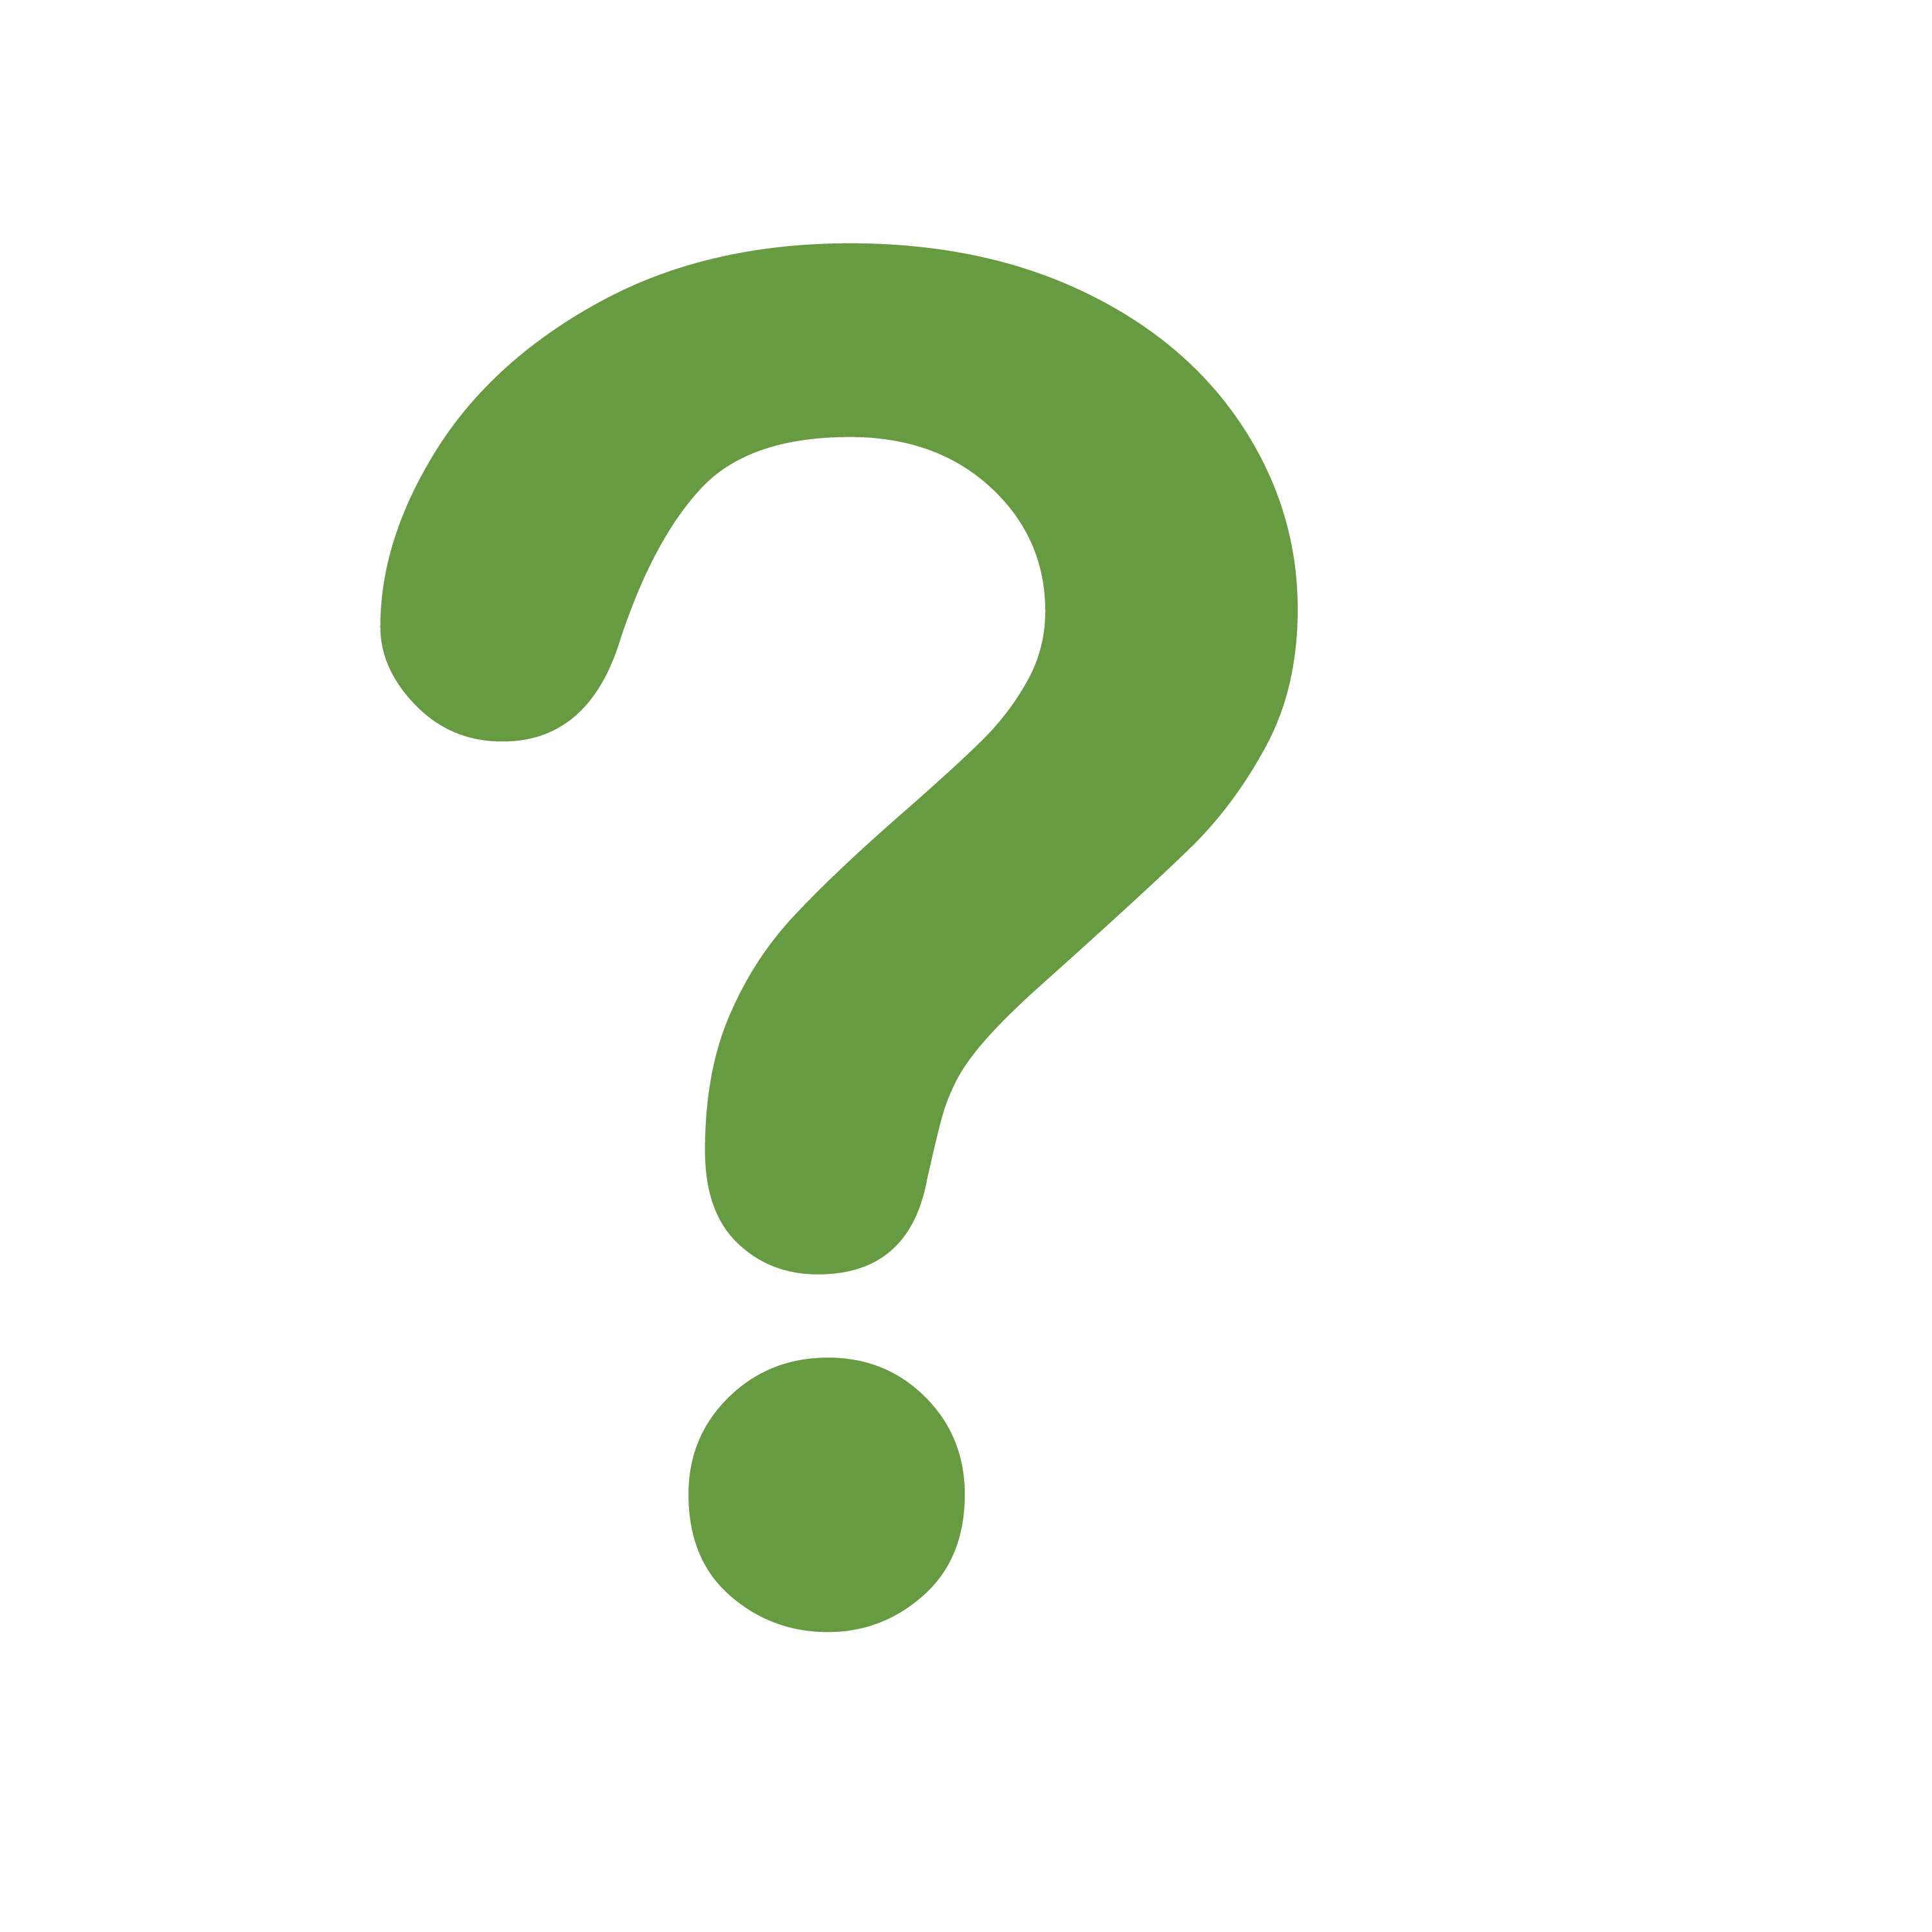 A large green question mark.